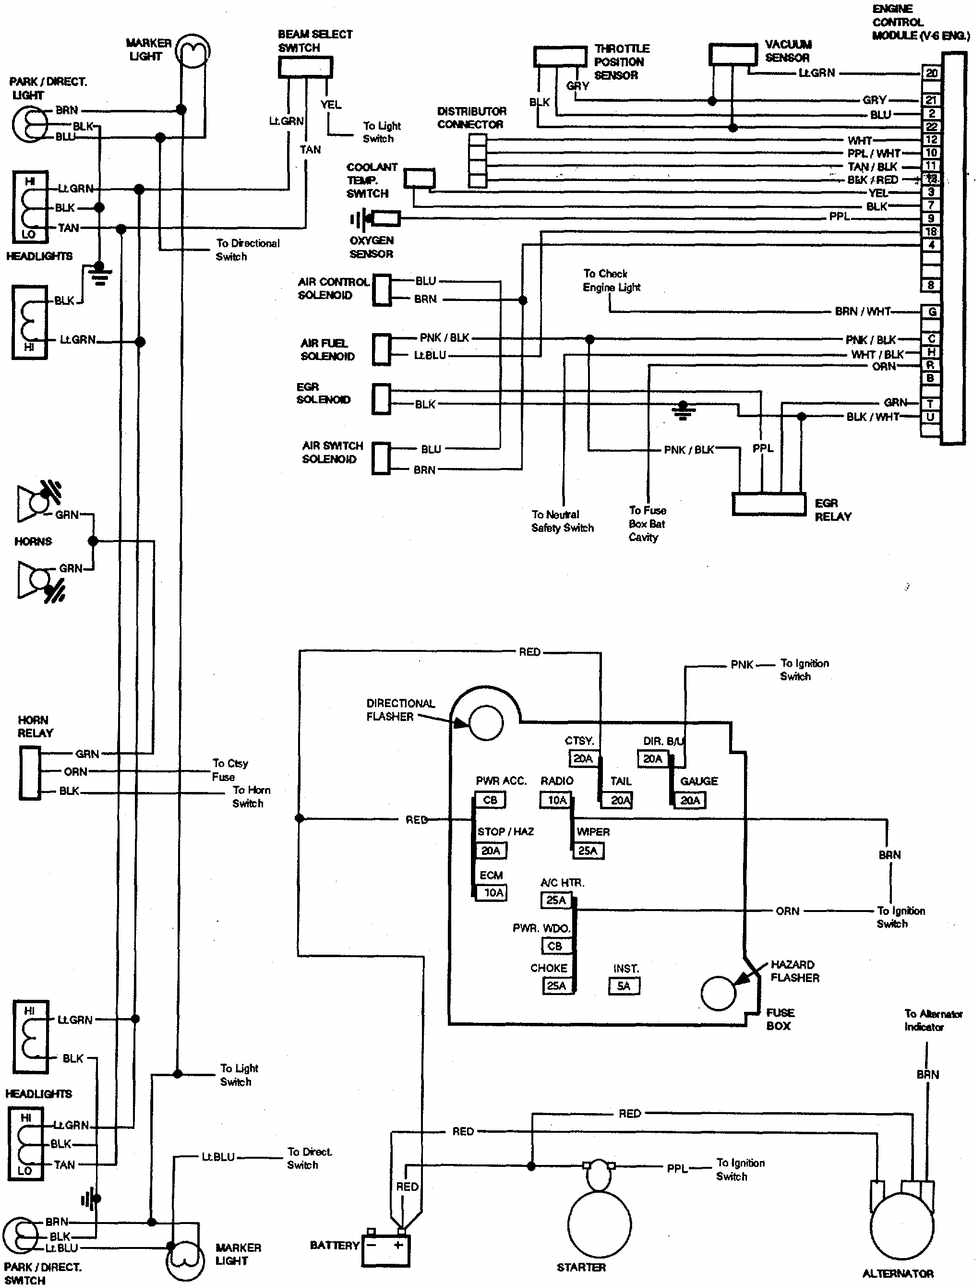 Chevrolet V8 Trucks 1981 1987 Electrical Wiring Diagram 1995 chevy need wiring color code tail lights turn signal chevy wiring diagrams trucks at edmiracle.co